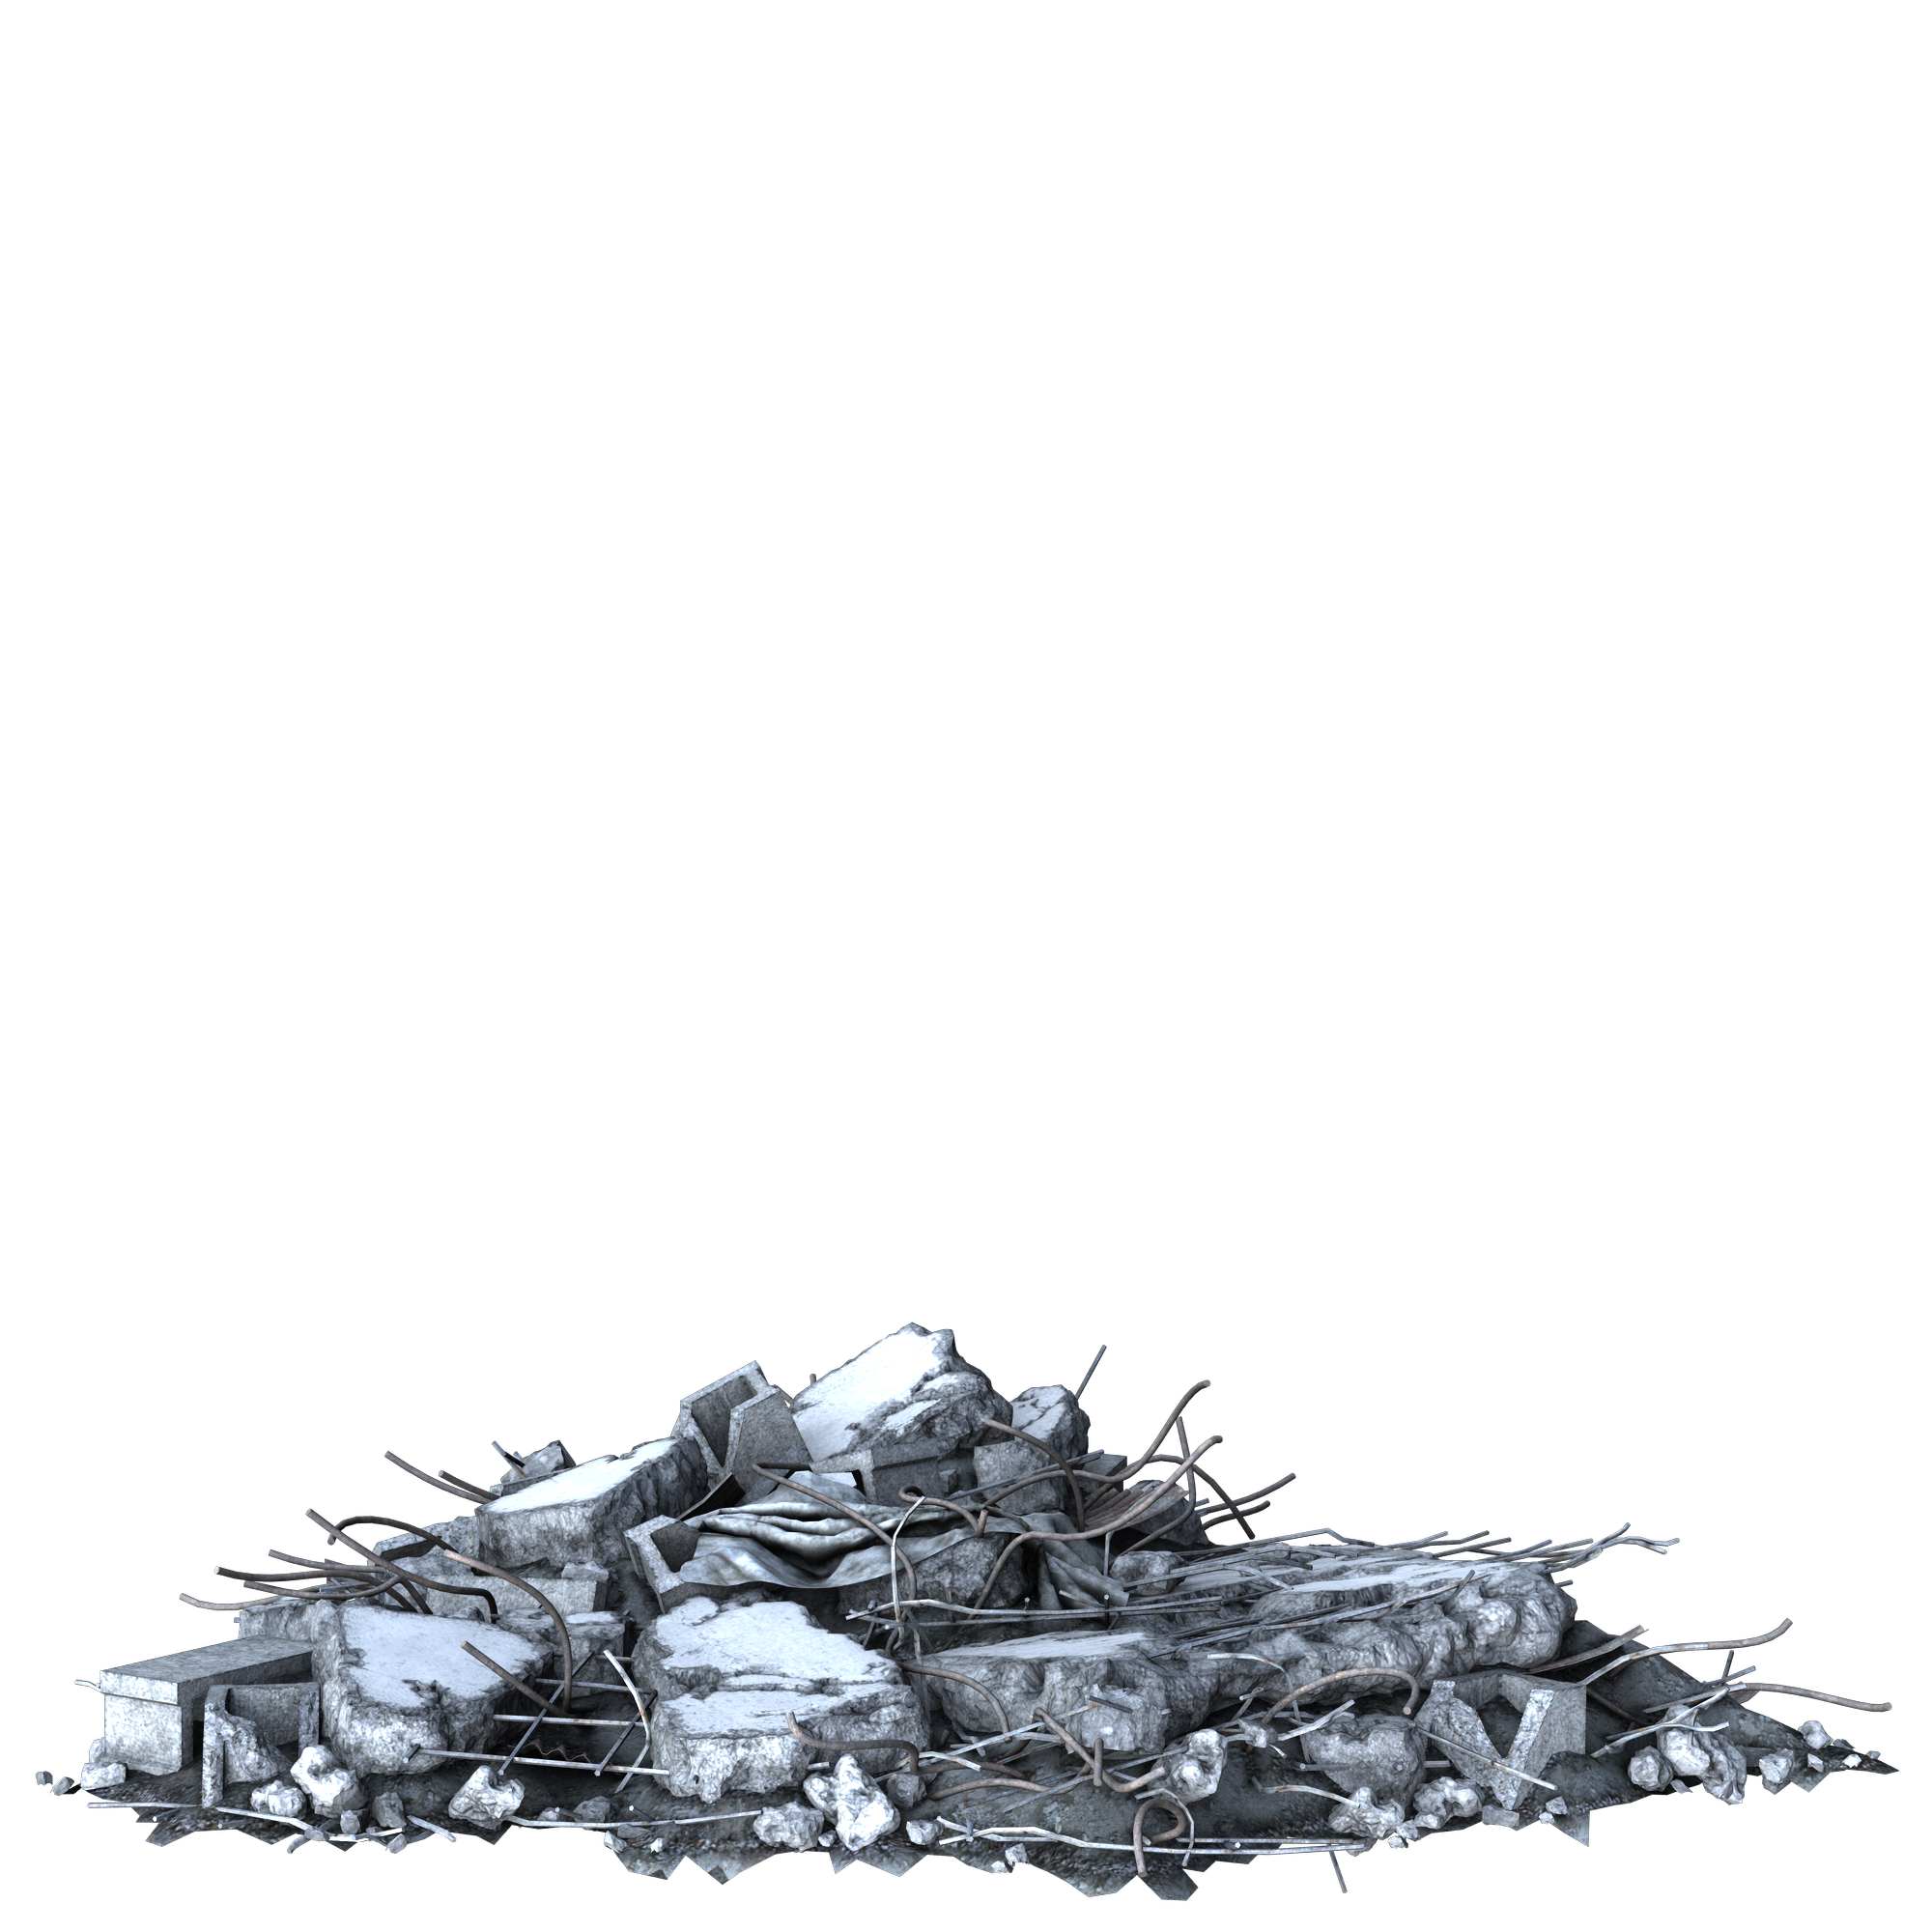 Flying Debris Png Rubble 7 by cga...